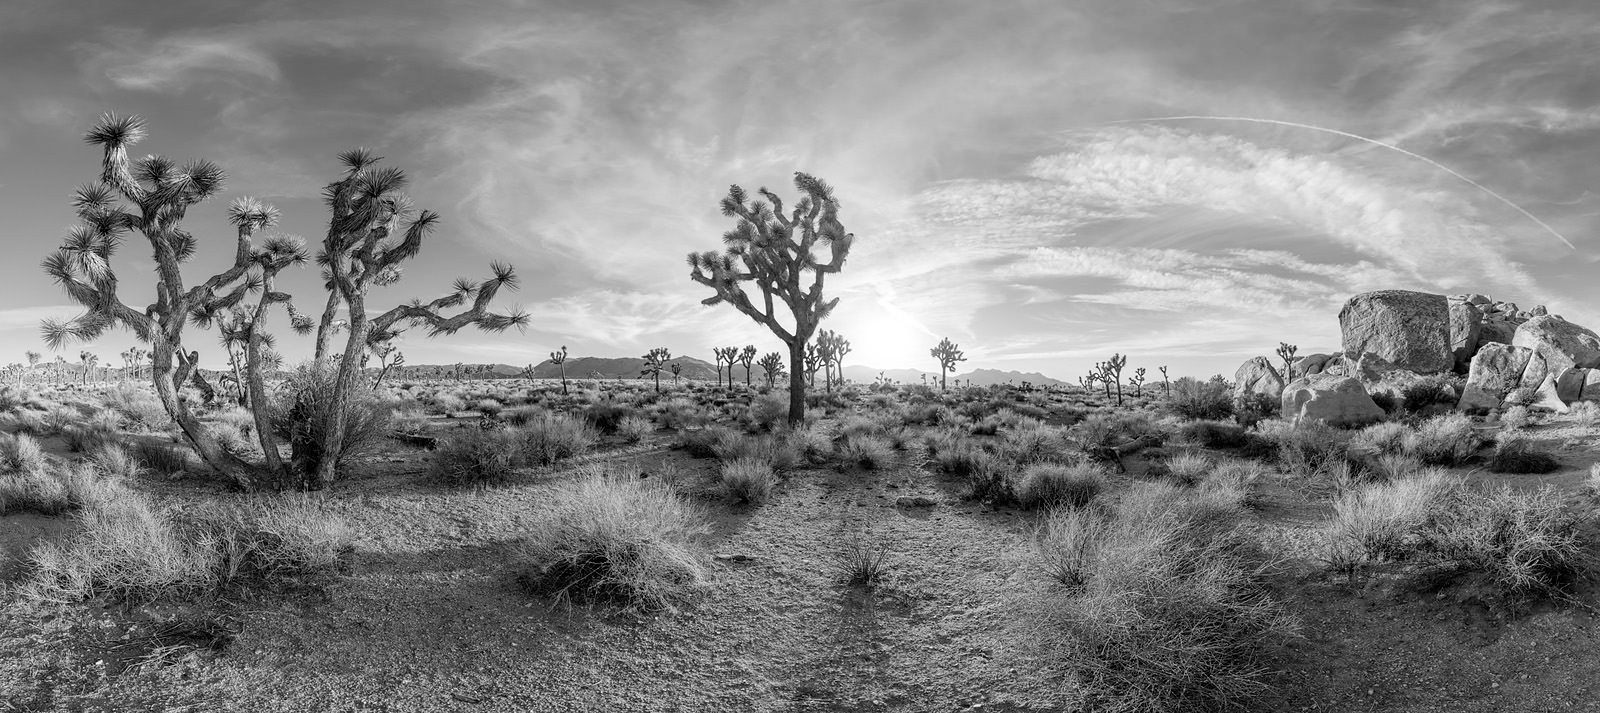 Joshua Tree Acrylic - California Black & White Fine Art Photo